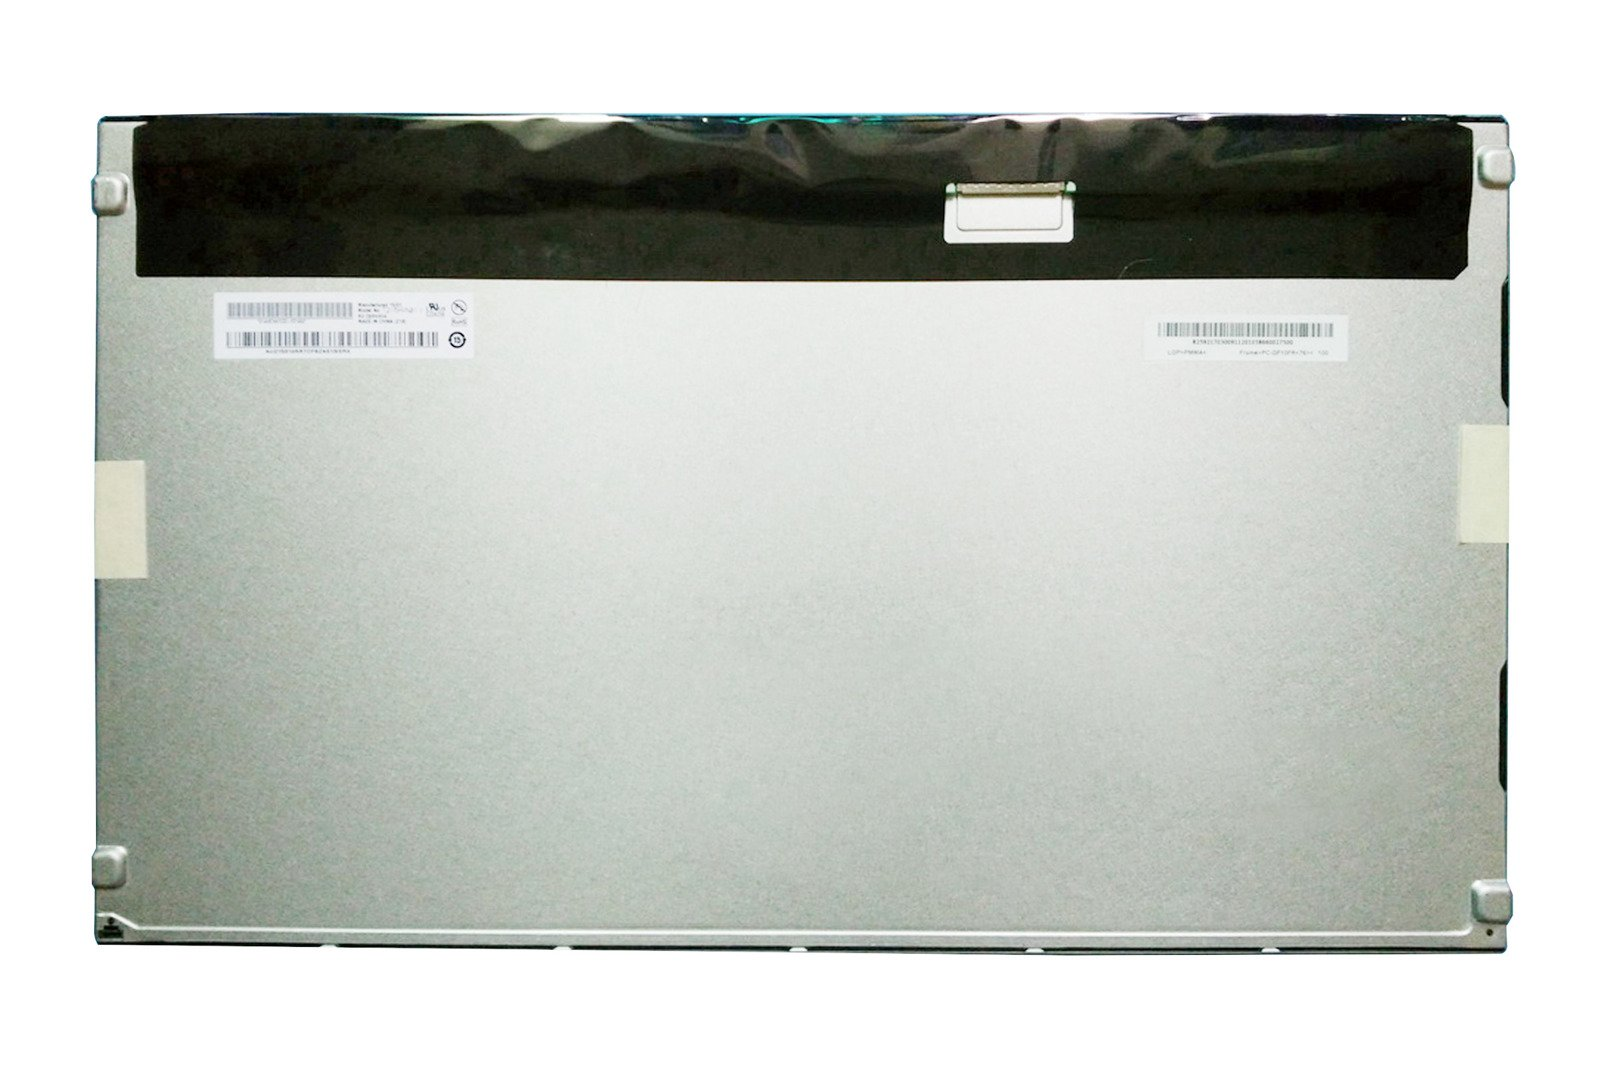 Display Panel Screen AUO 21.5' T215HVN01.1 1920 x 1080